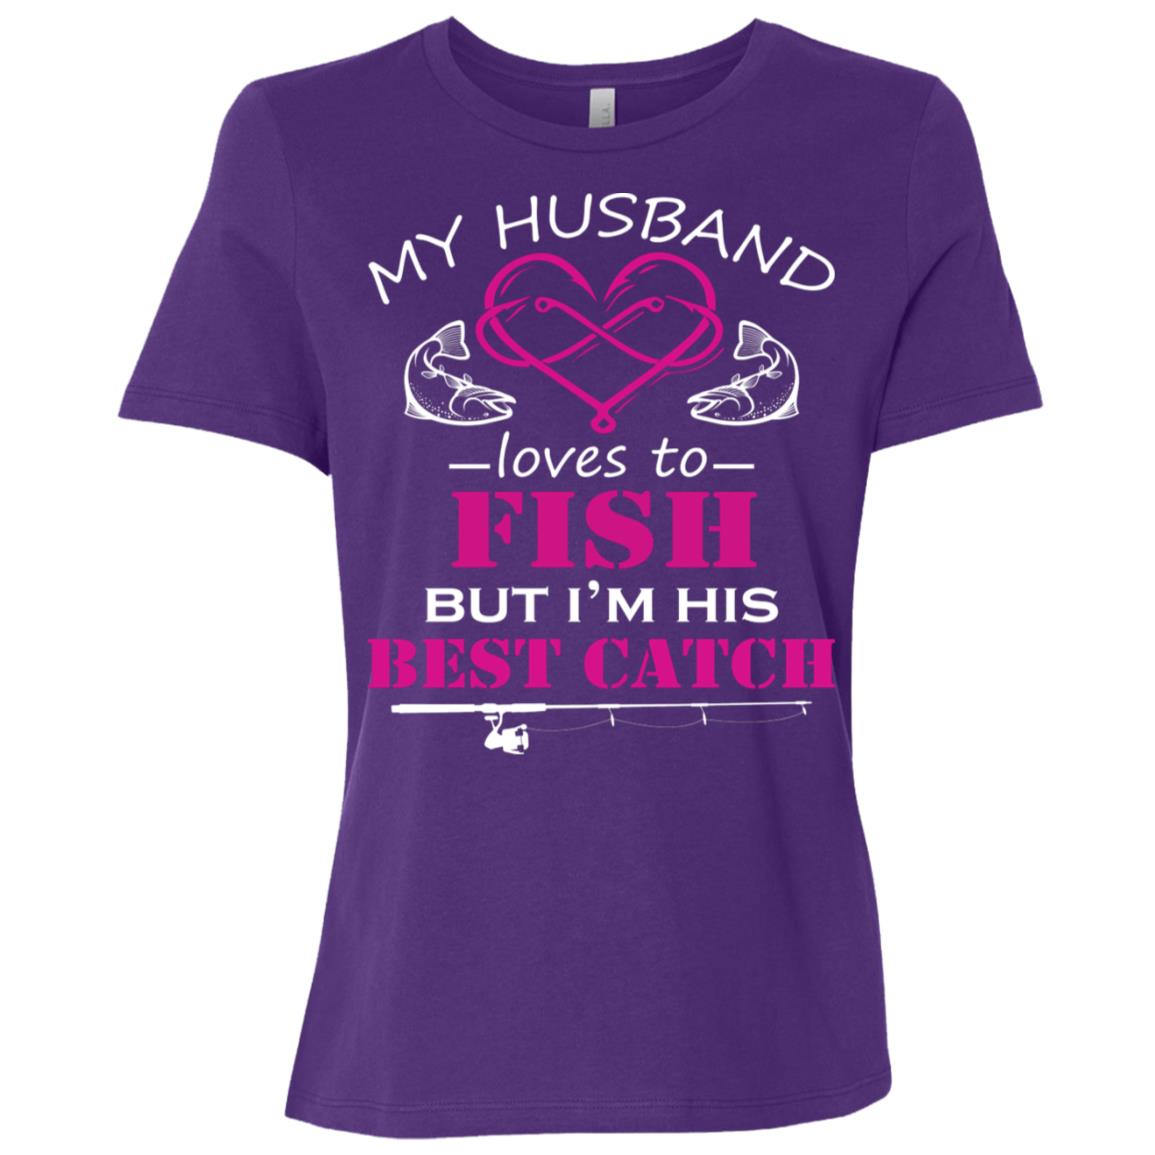 My Husband Loves To Fish But I'm His Best Catch Women Short Sleeve T-Shirt